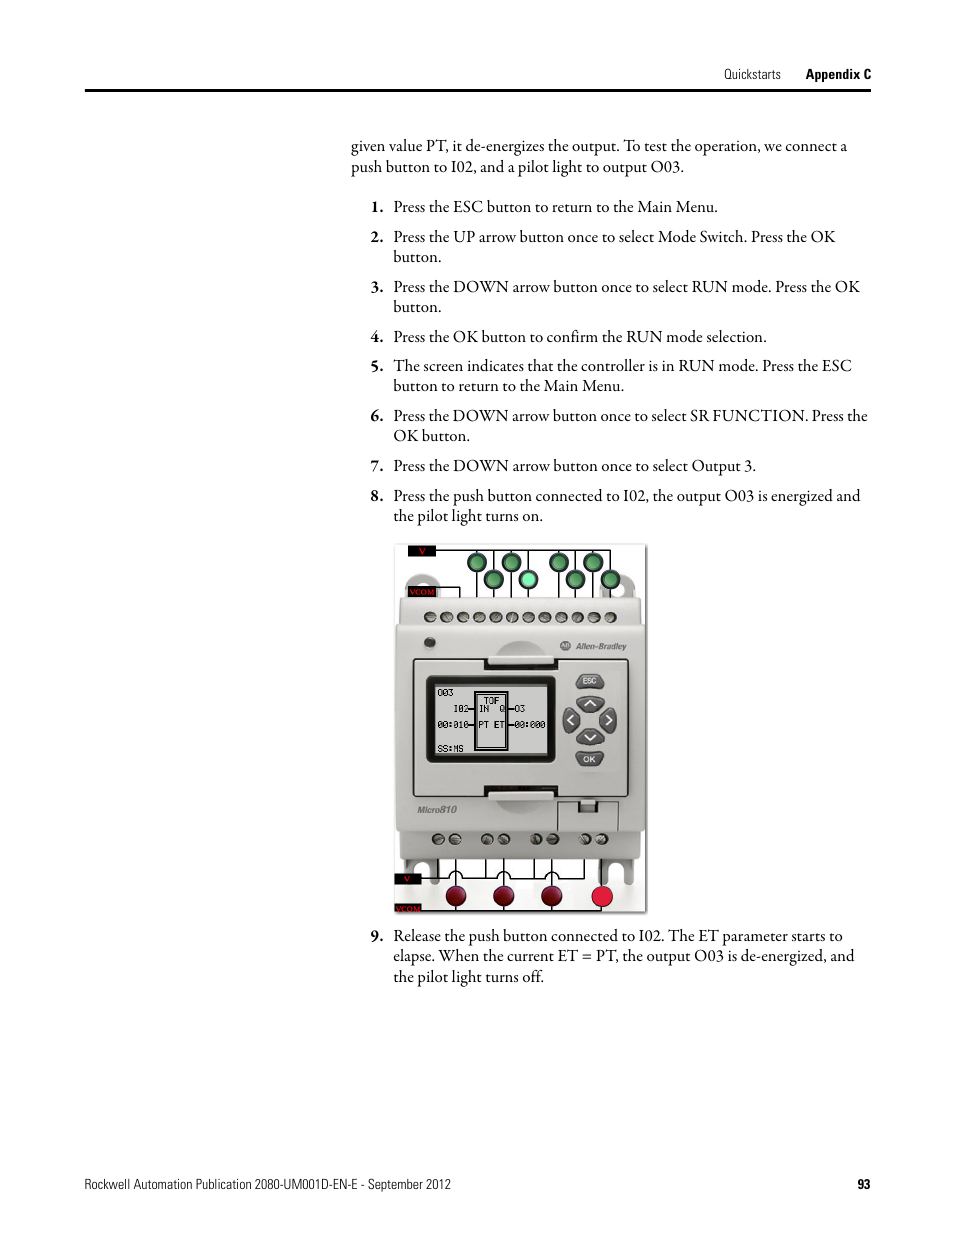 rockwell automation 2080 lc10 12dwd micro810 programmable controllers user manual page101 rockwell automation 2080 lc10 12dwd micro810 programmable micro810 wiring diagram at eliteediting.co